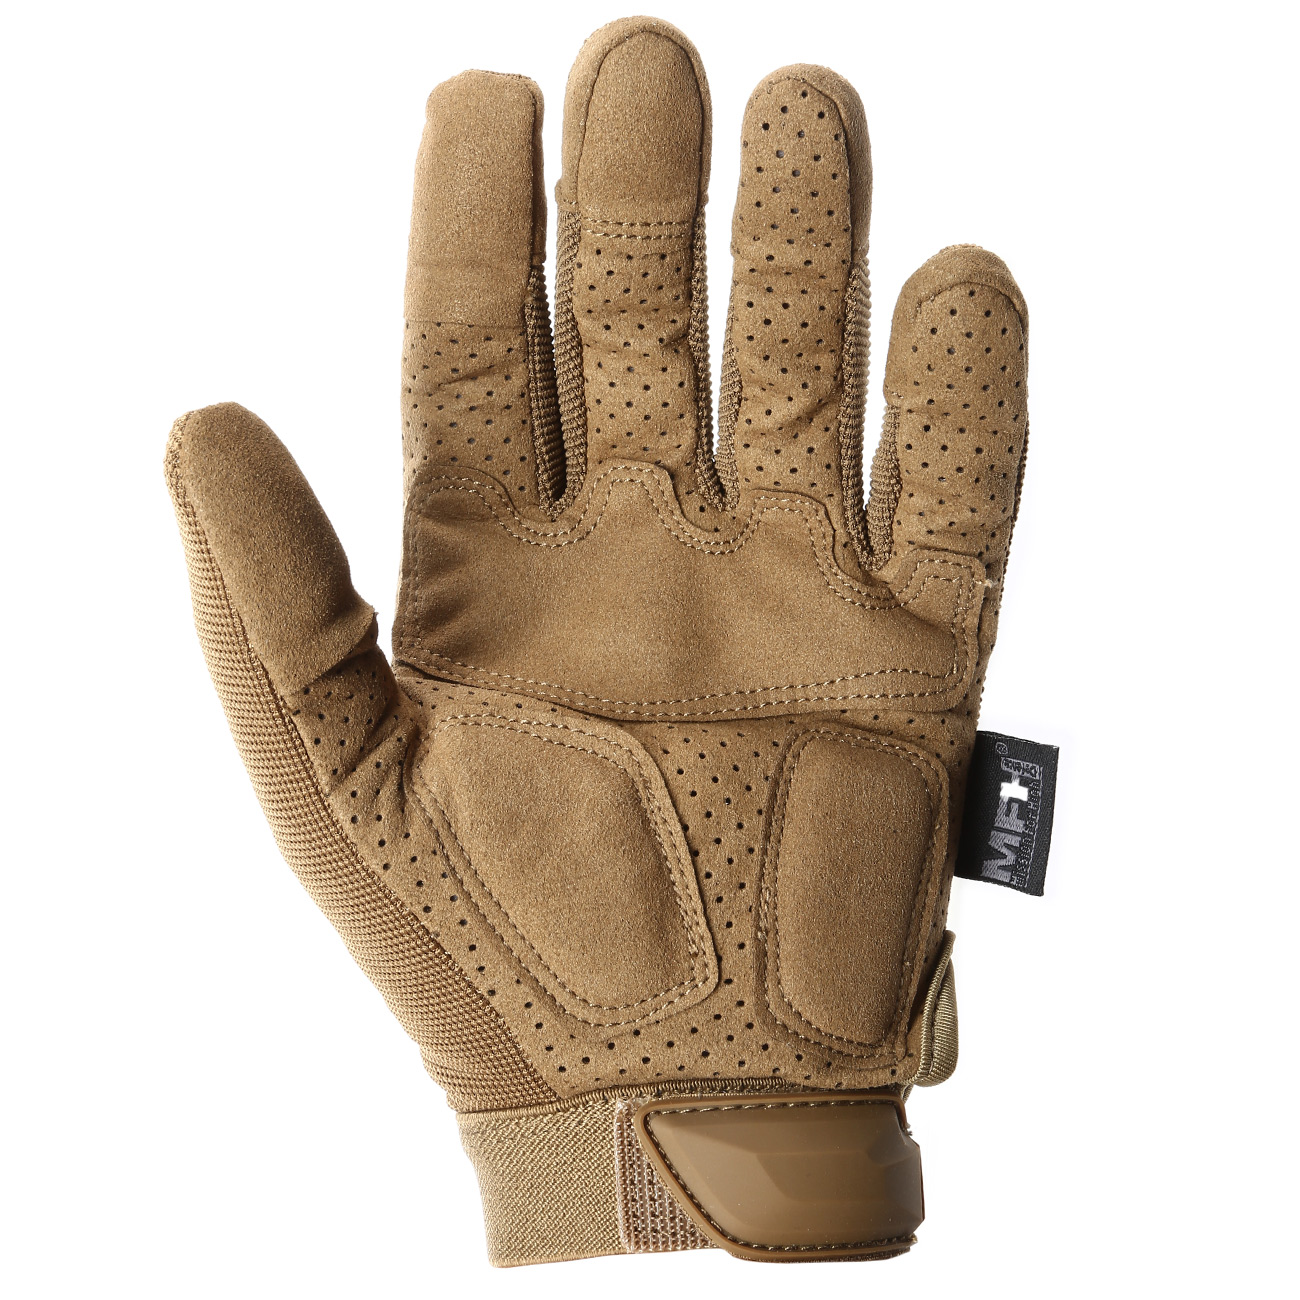 MFH Tactical Handschuhe Action coyote tan 1